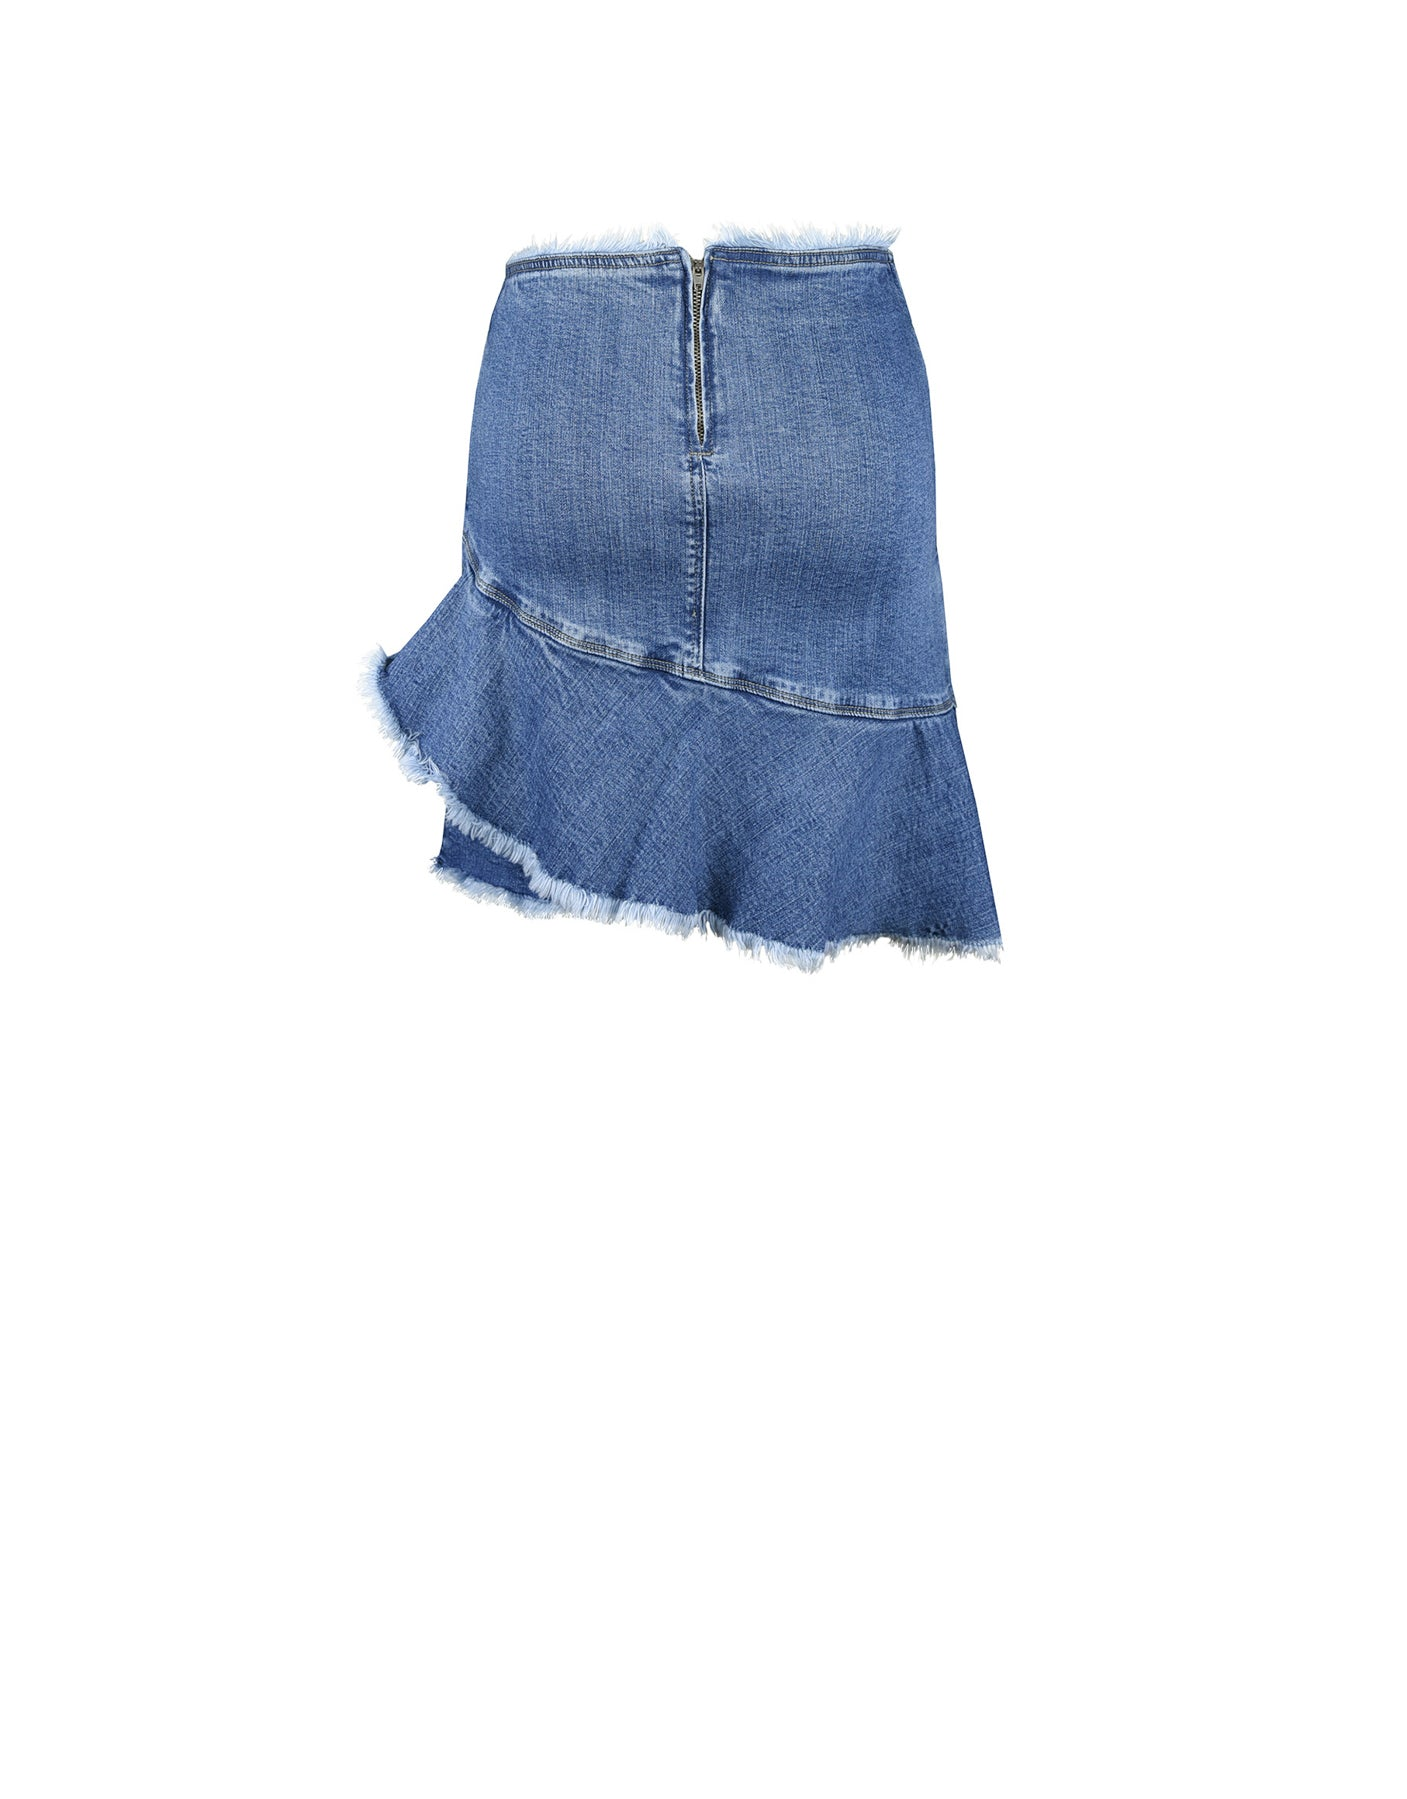 Denim Ruffle Skirt - ISLE & ROW